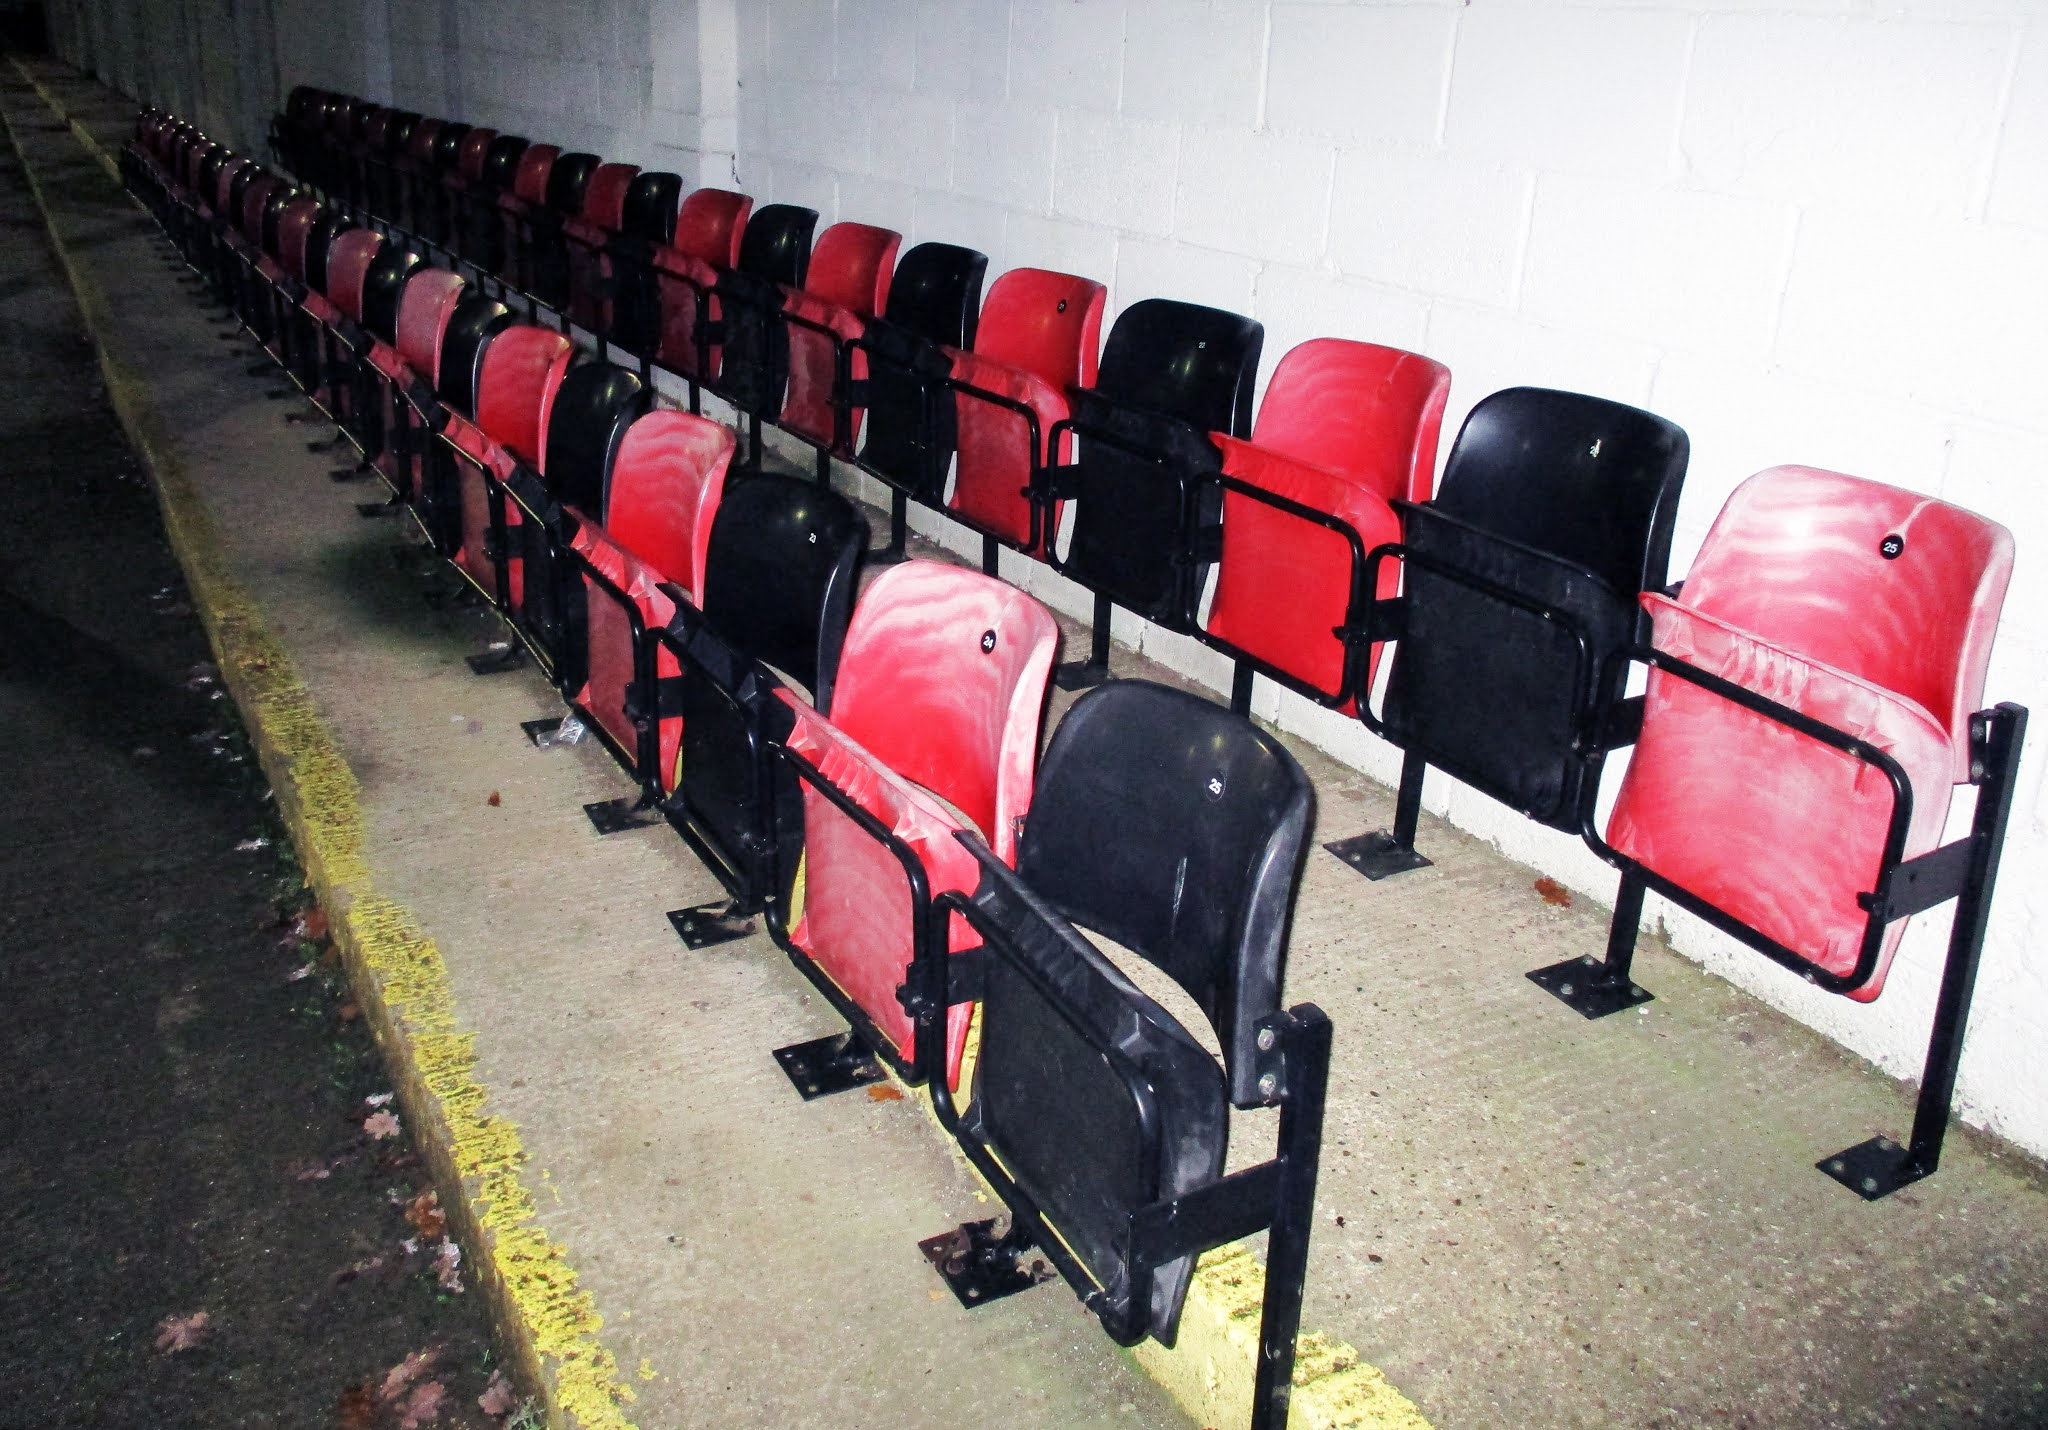 Red and black seats at The Rivermoor Stadium, Reading